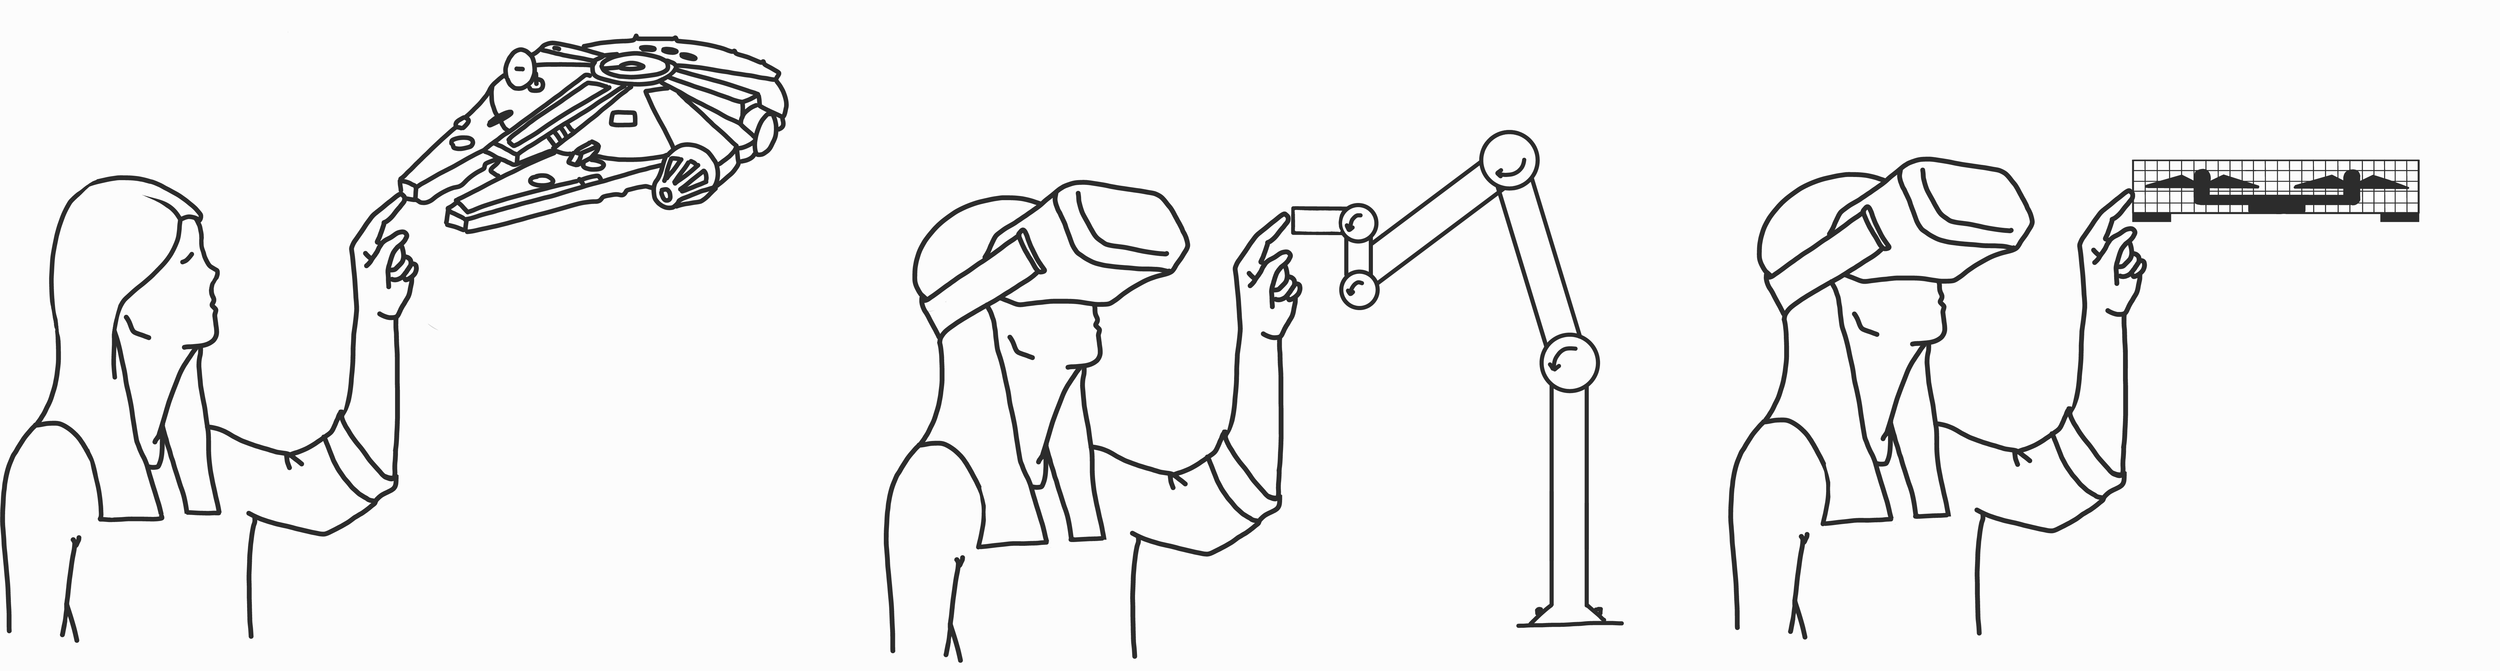 Left: In virtual reality, user touching a virtual object. Middle: In the real world, user touching a grounded robotic arm. Right: In the real world, user touching a safe-to-touch drone.